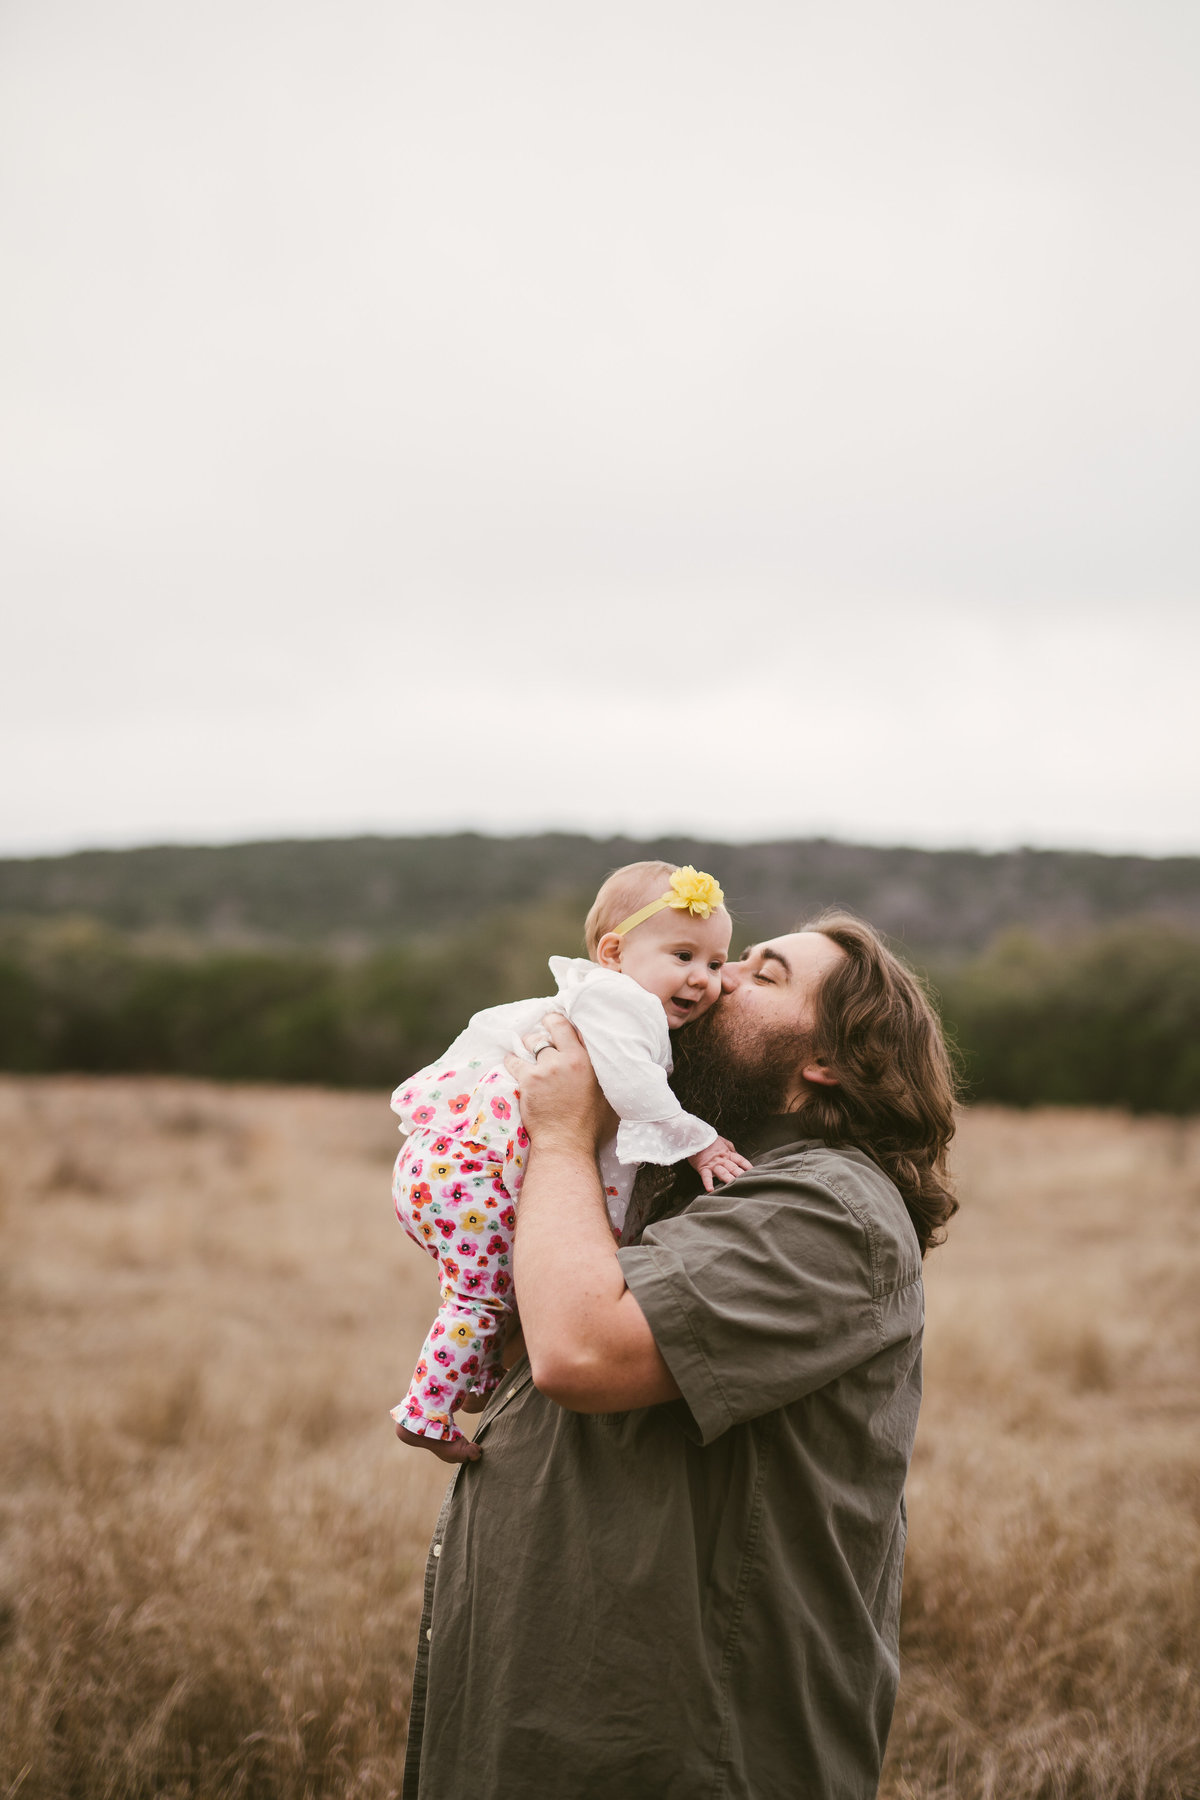 daddy and daughter family portrait session by San Antonio Photographer Expose The Heart Photography